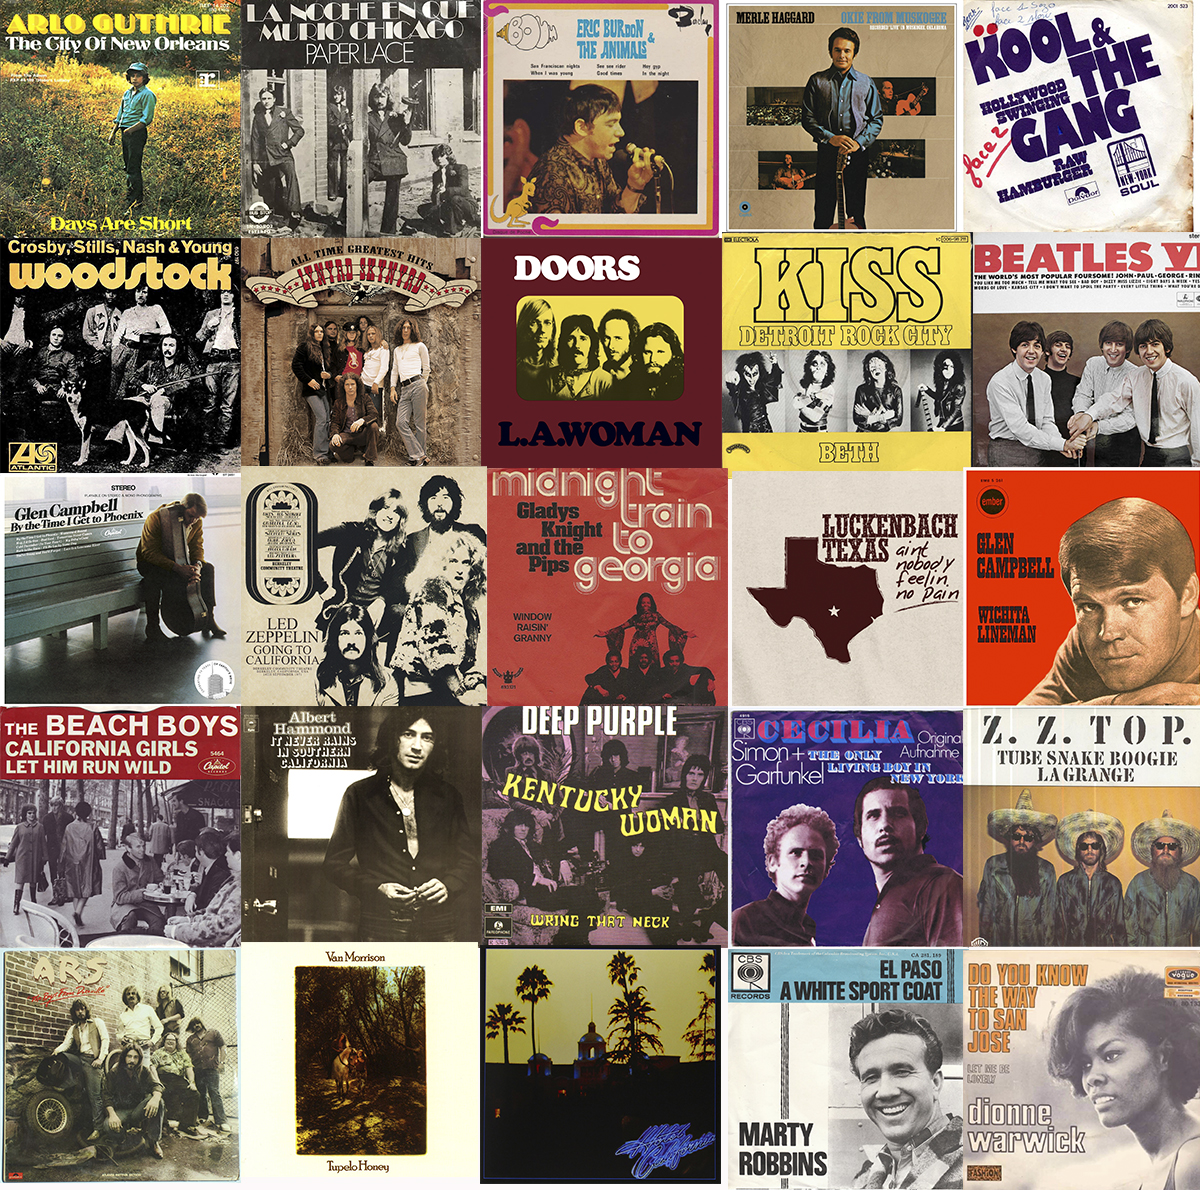 Popular songs of the 1950s and 1960s